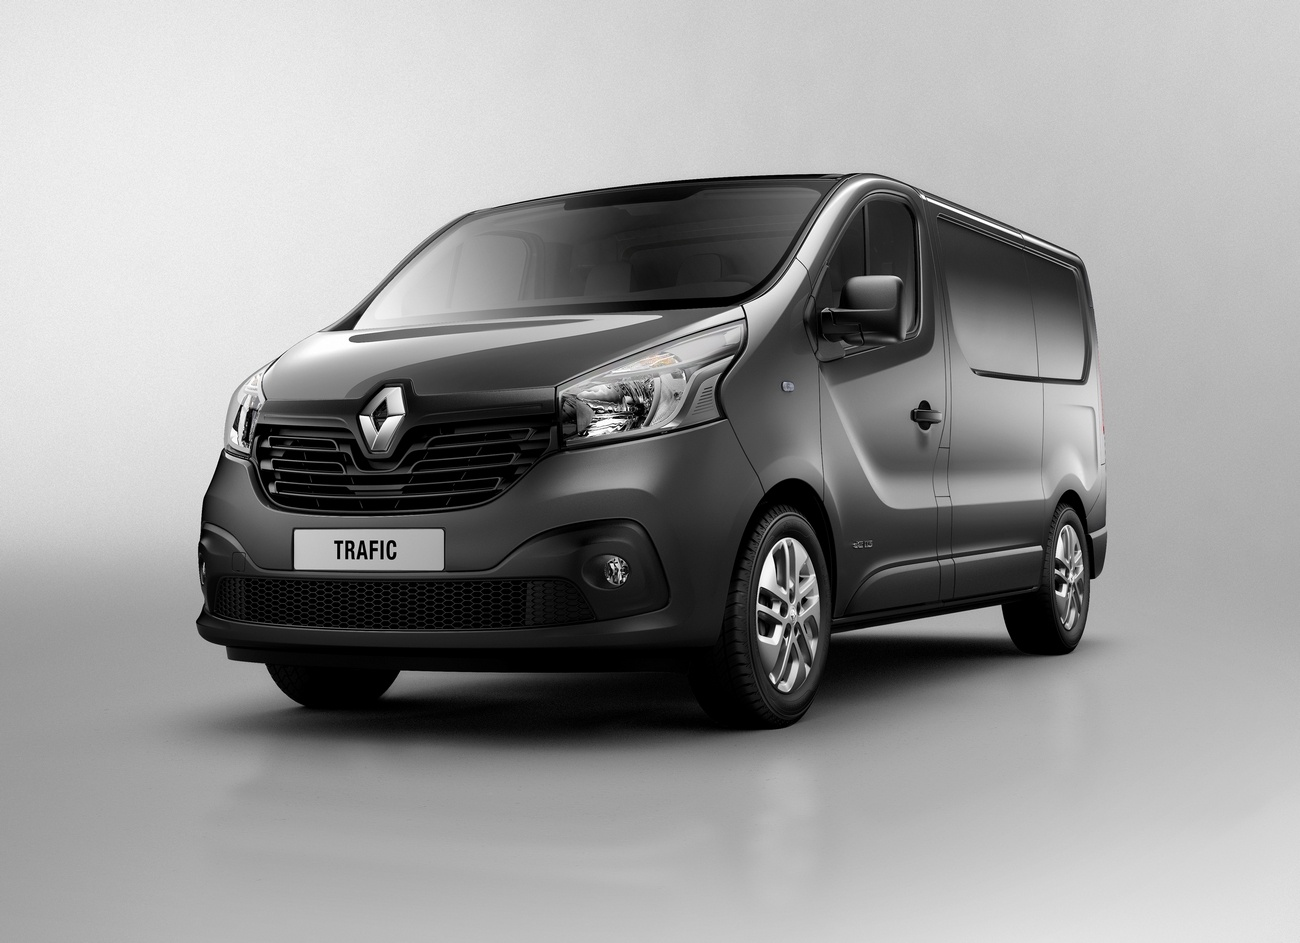 nouveau renault trafic 2014 2015 blog automobile. Black Bedroom Furniture Sets. Home Design Ideas